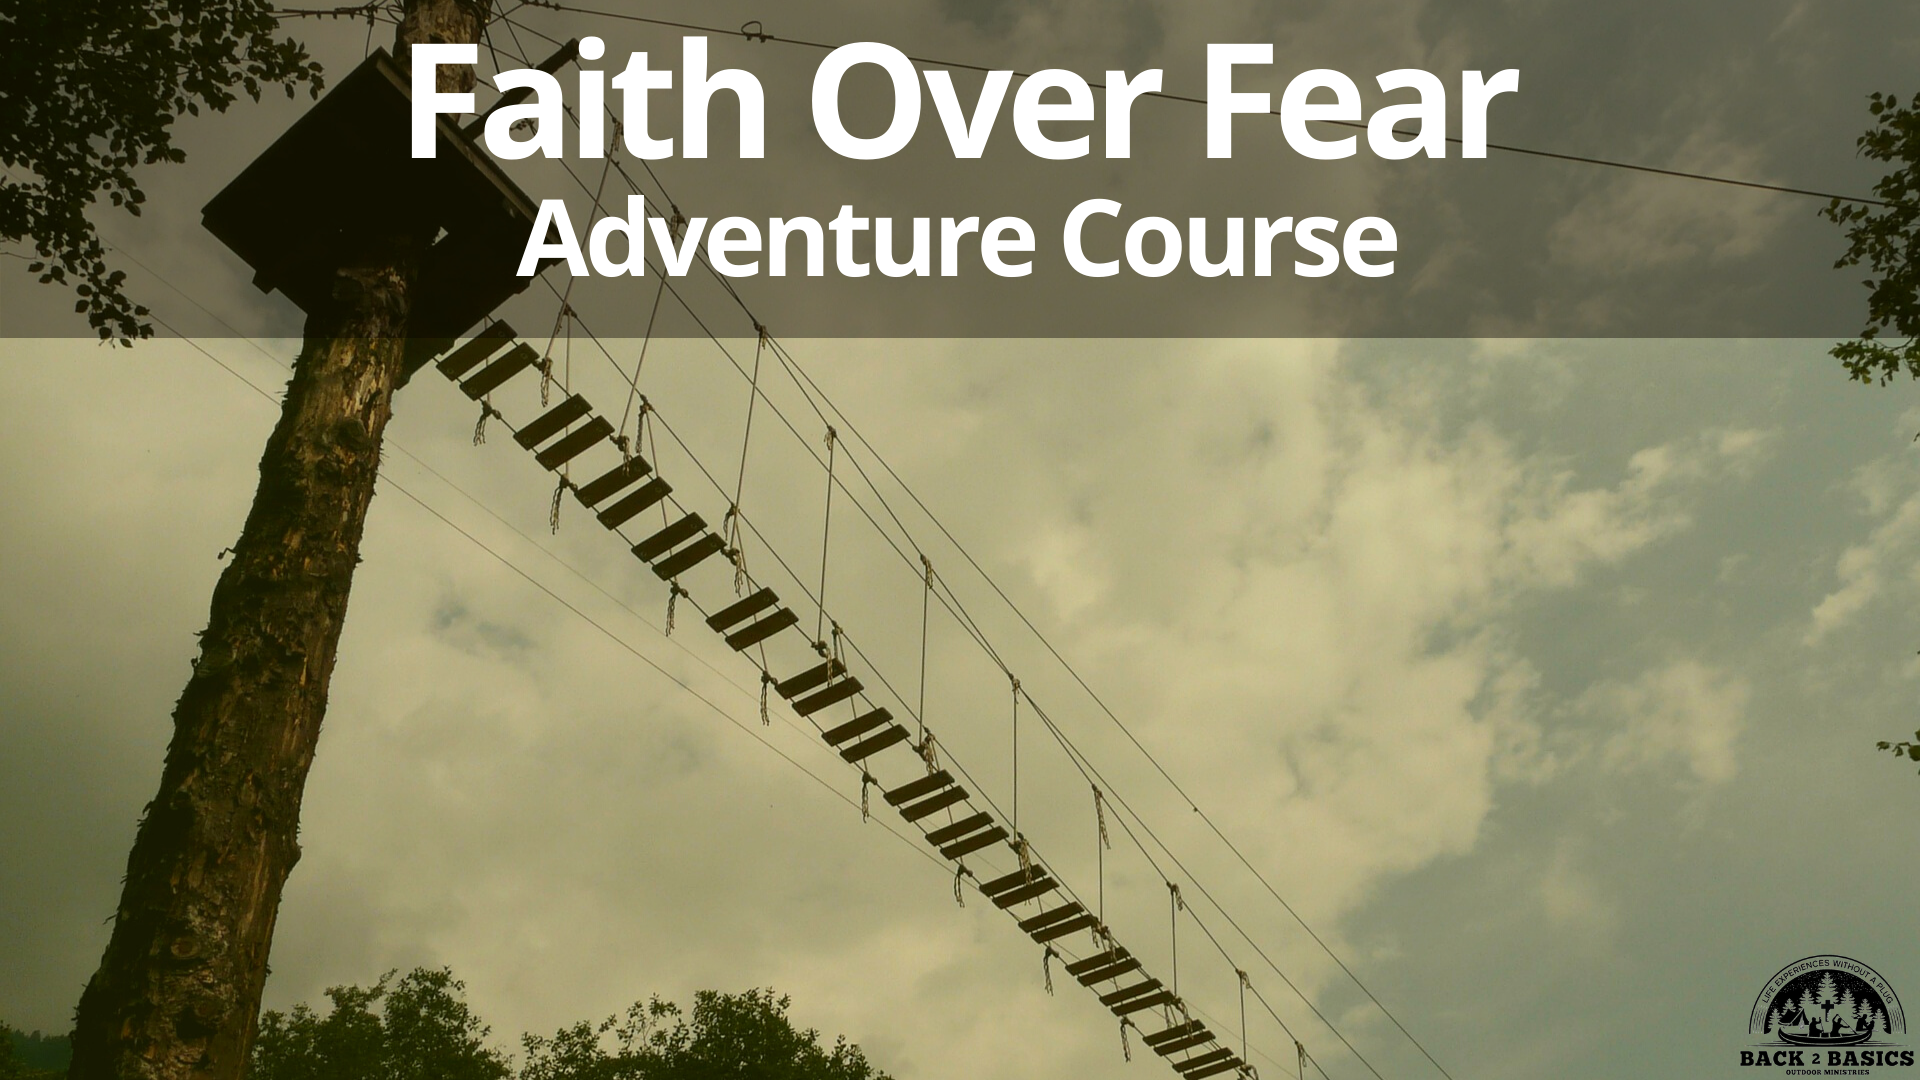 faith over fear adventure course, back2basics outdoor ministries